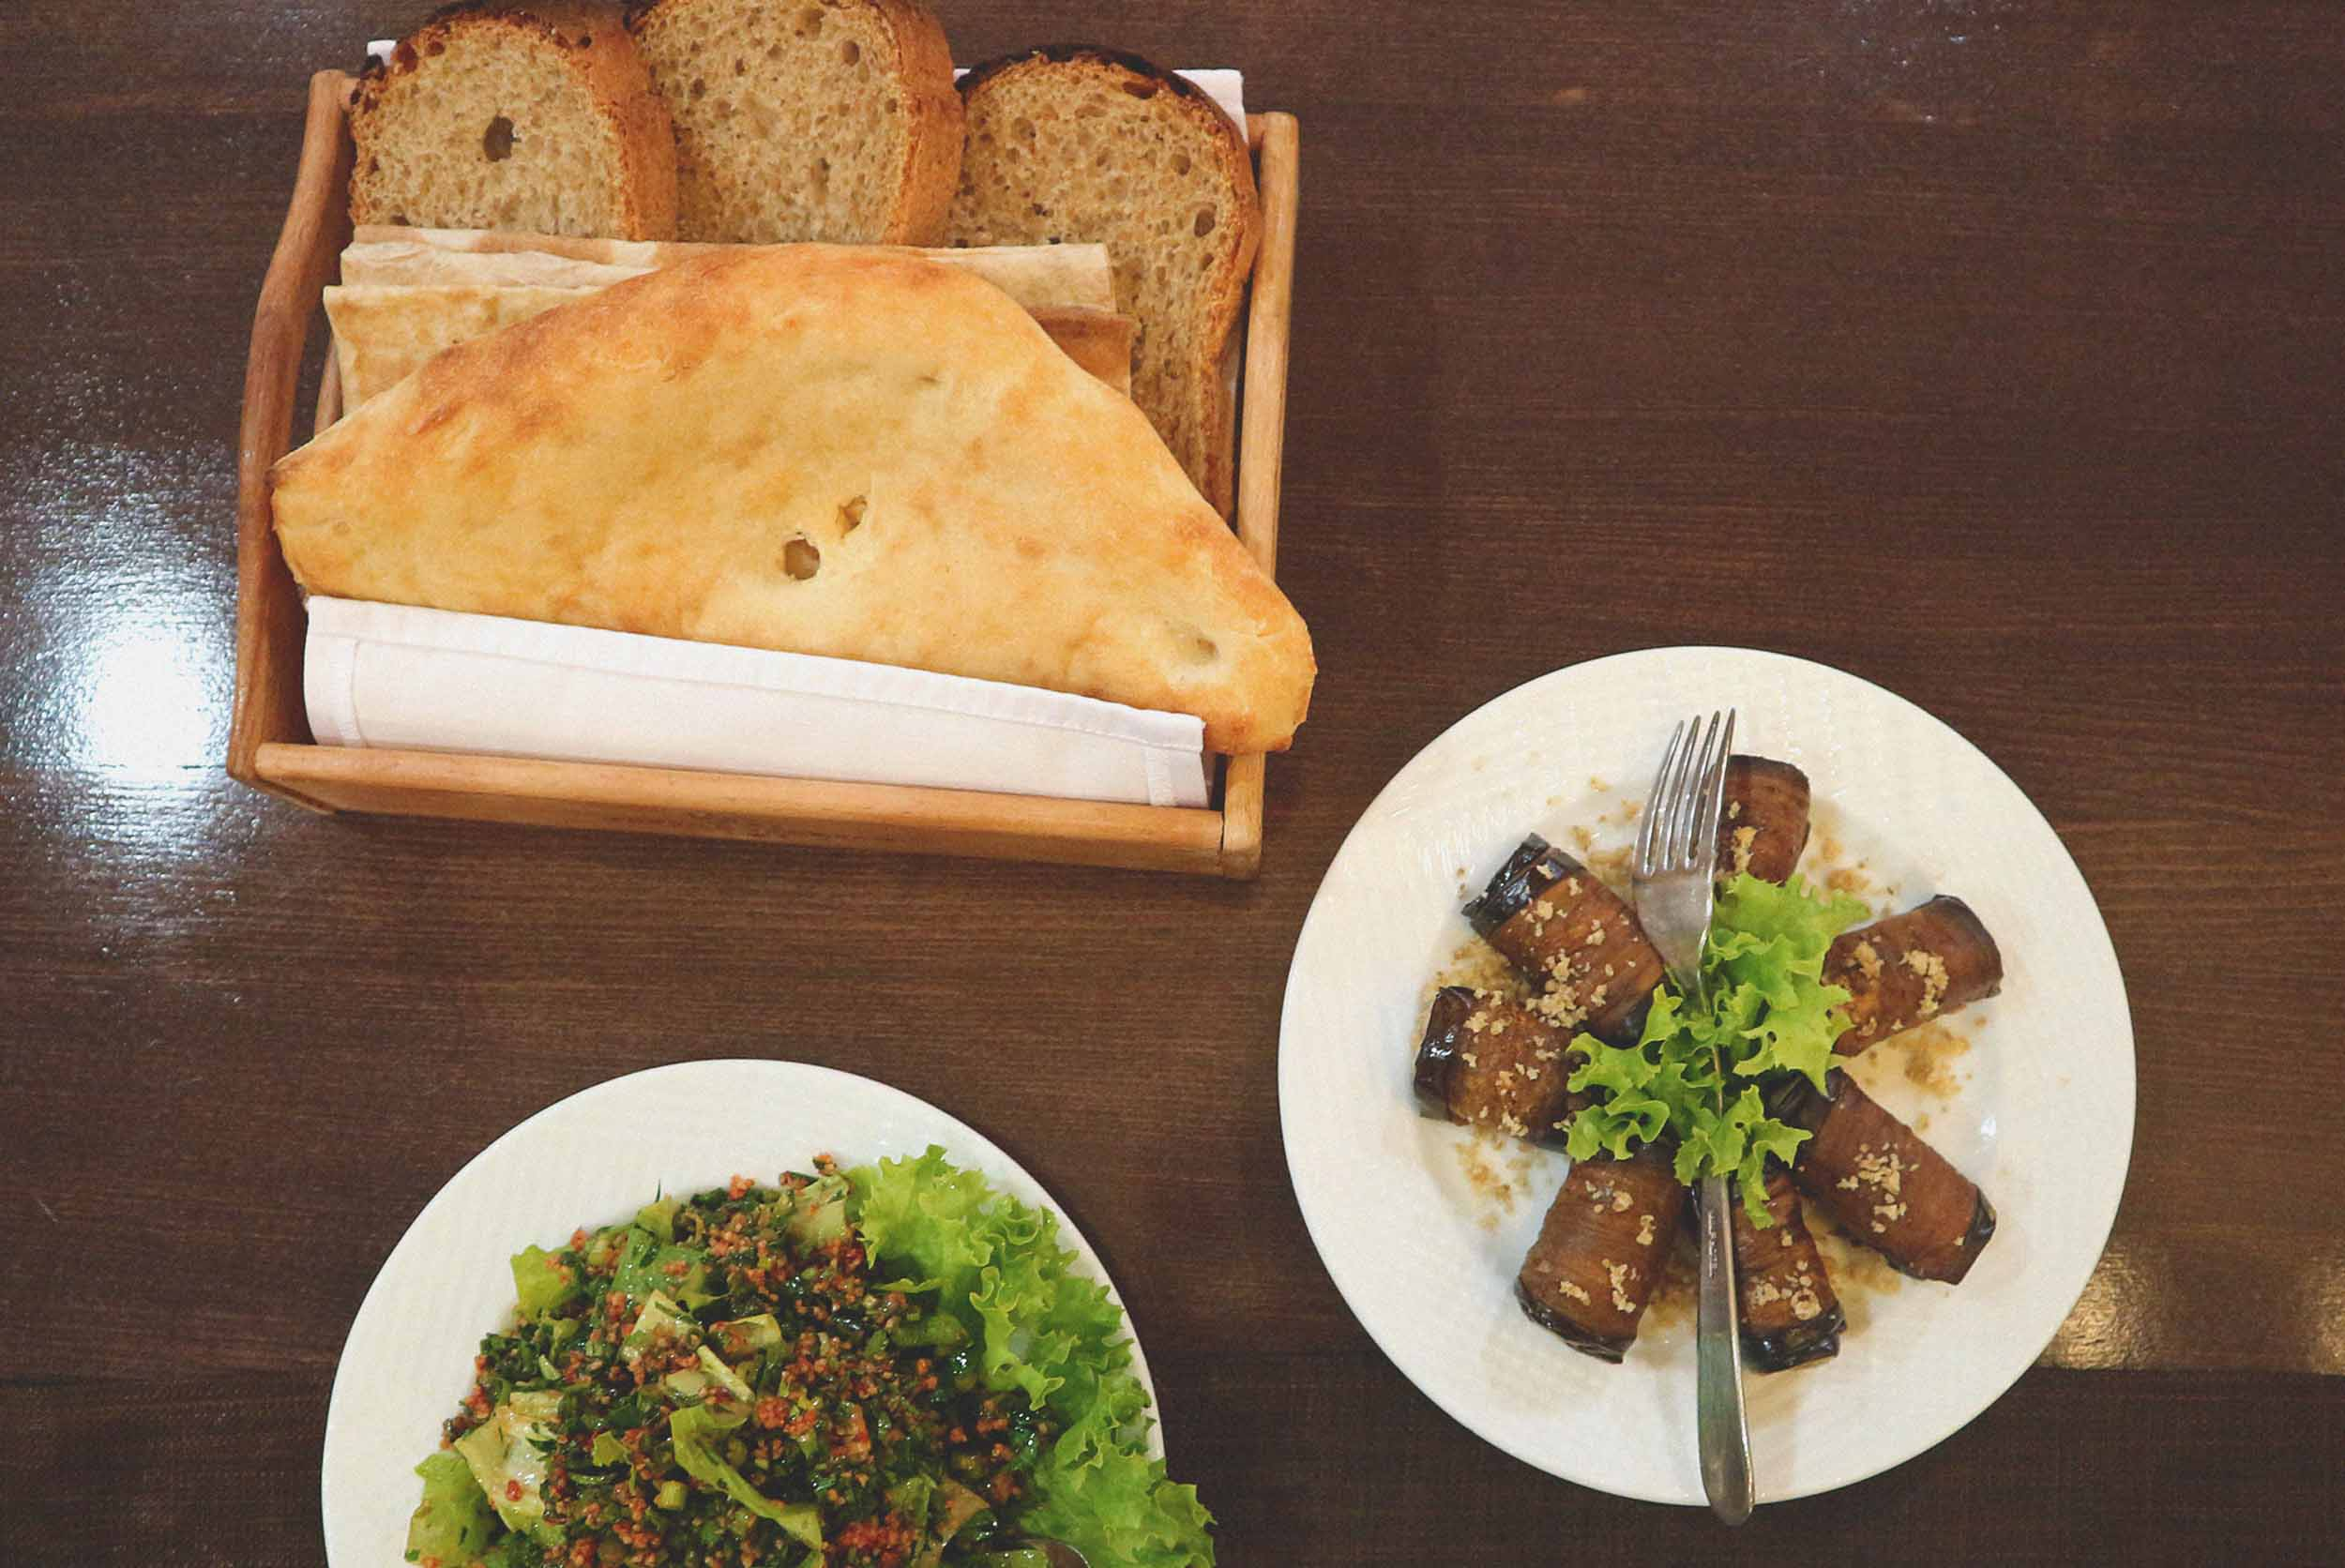 Homemade breads, Tabouleh salad and stuffed aubergines